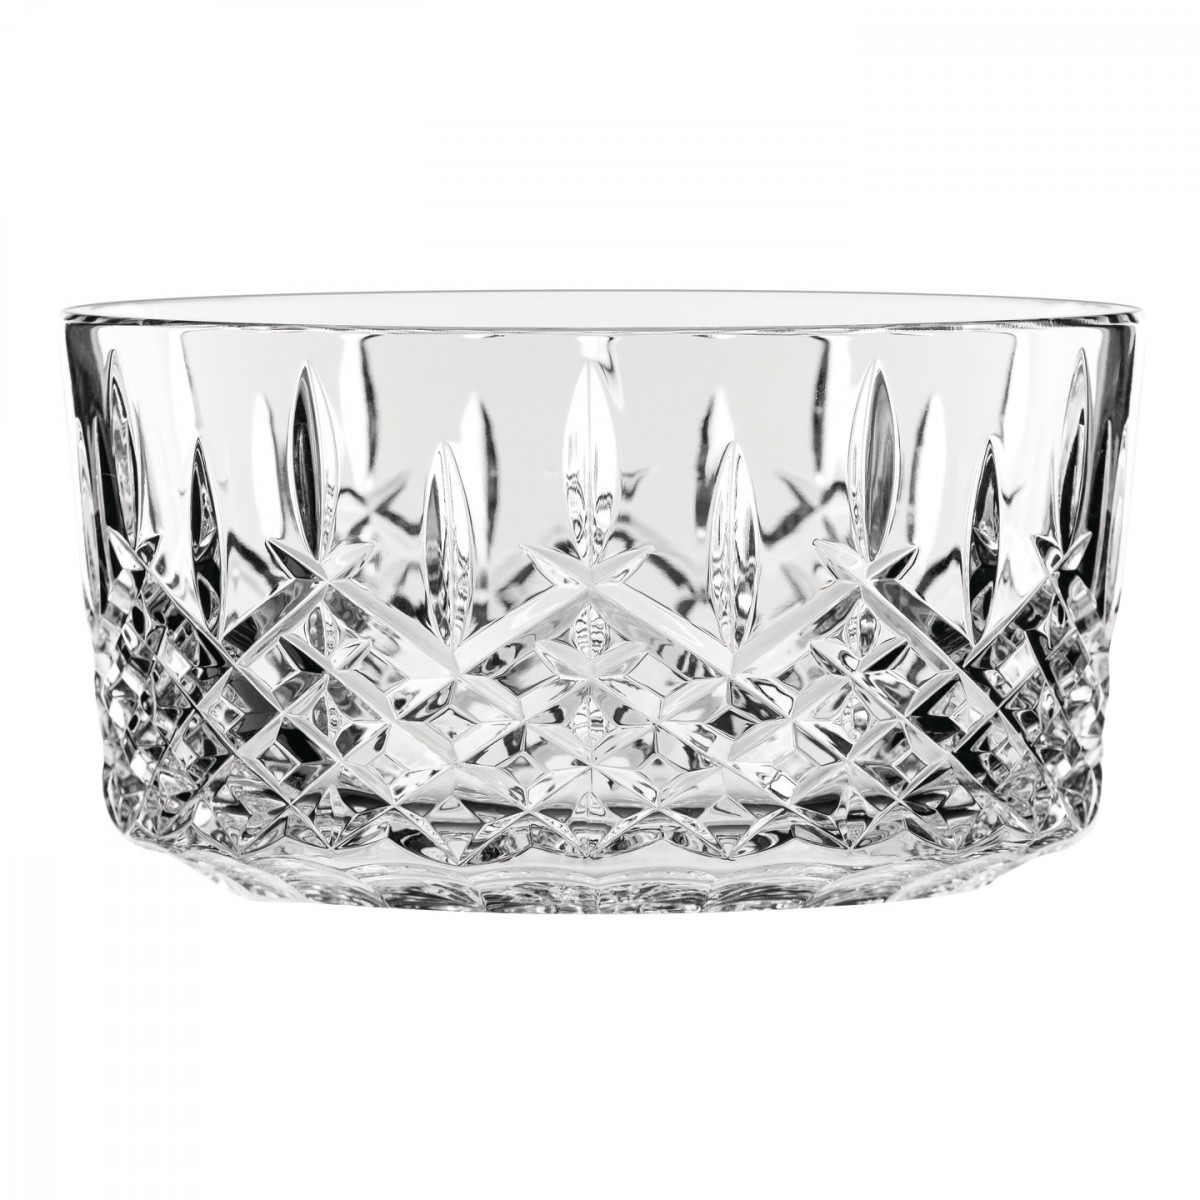 "Marquis by Waterford Crystal, Markham 9"" Crystal Bowl"